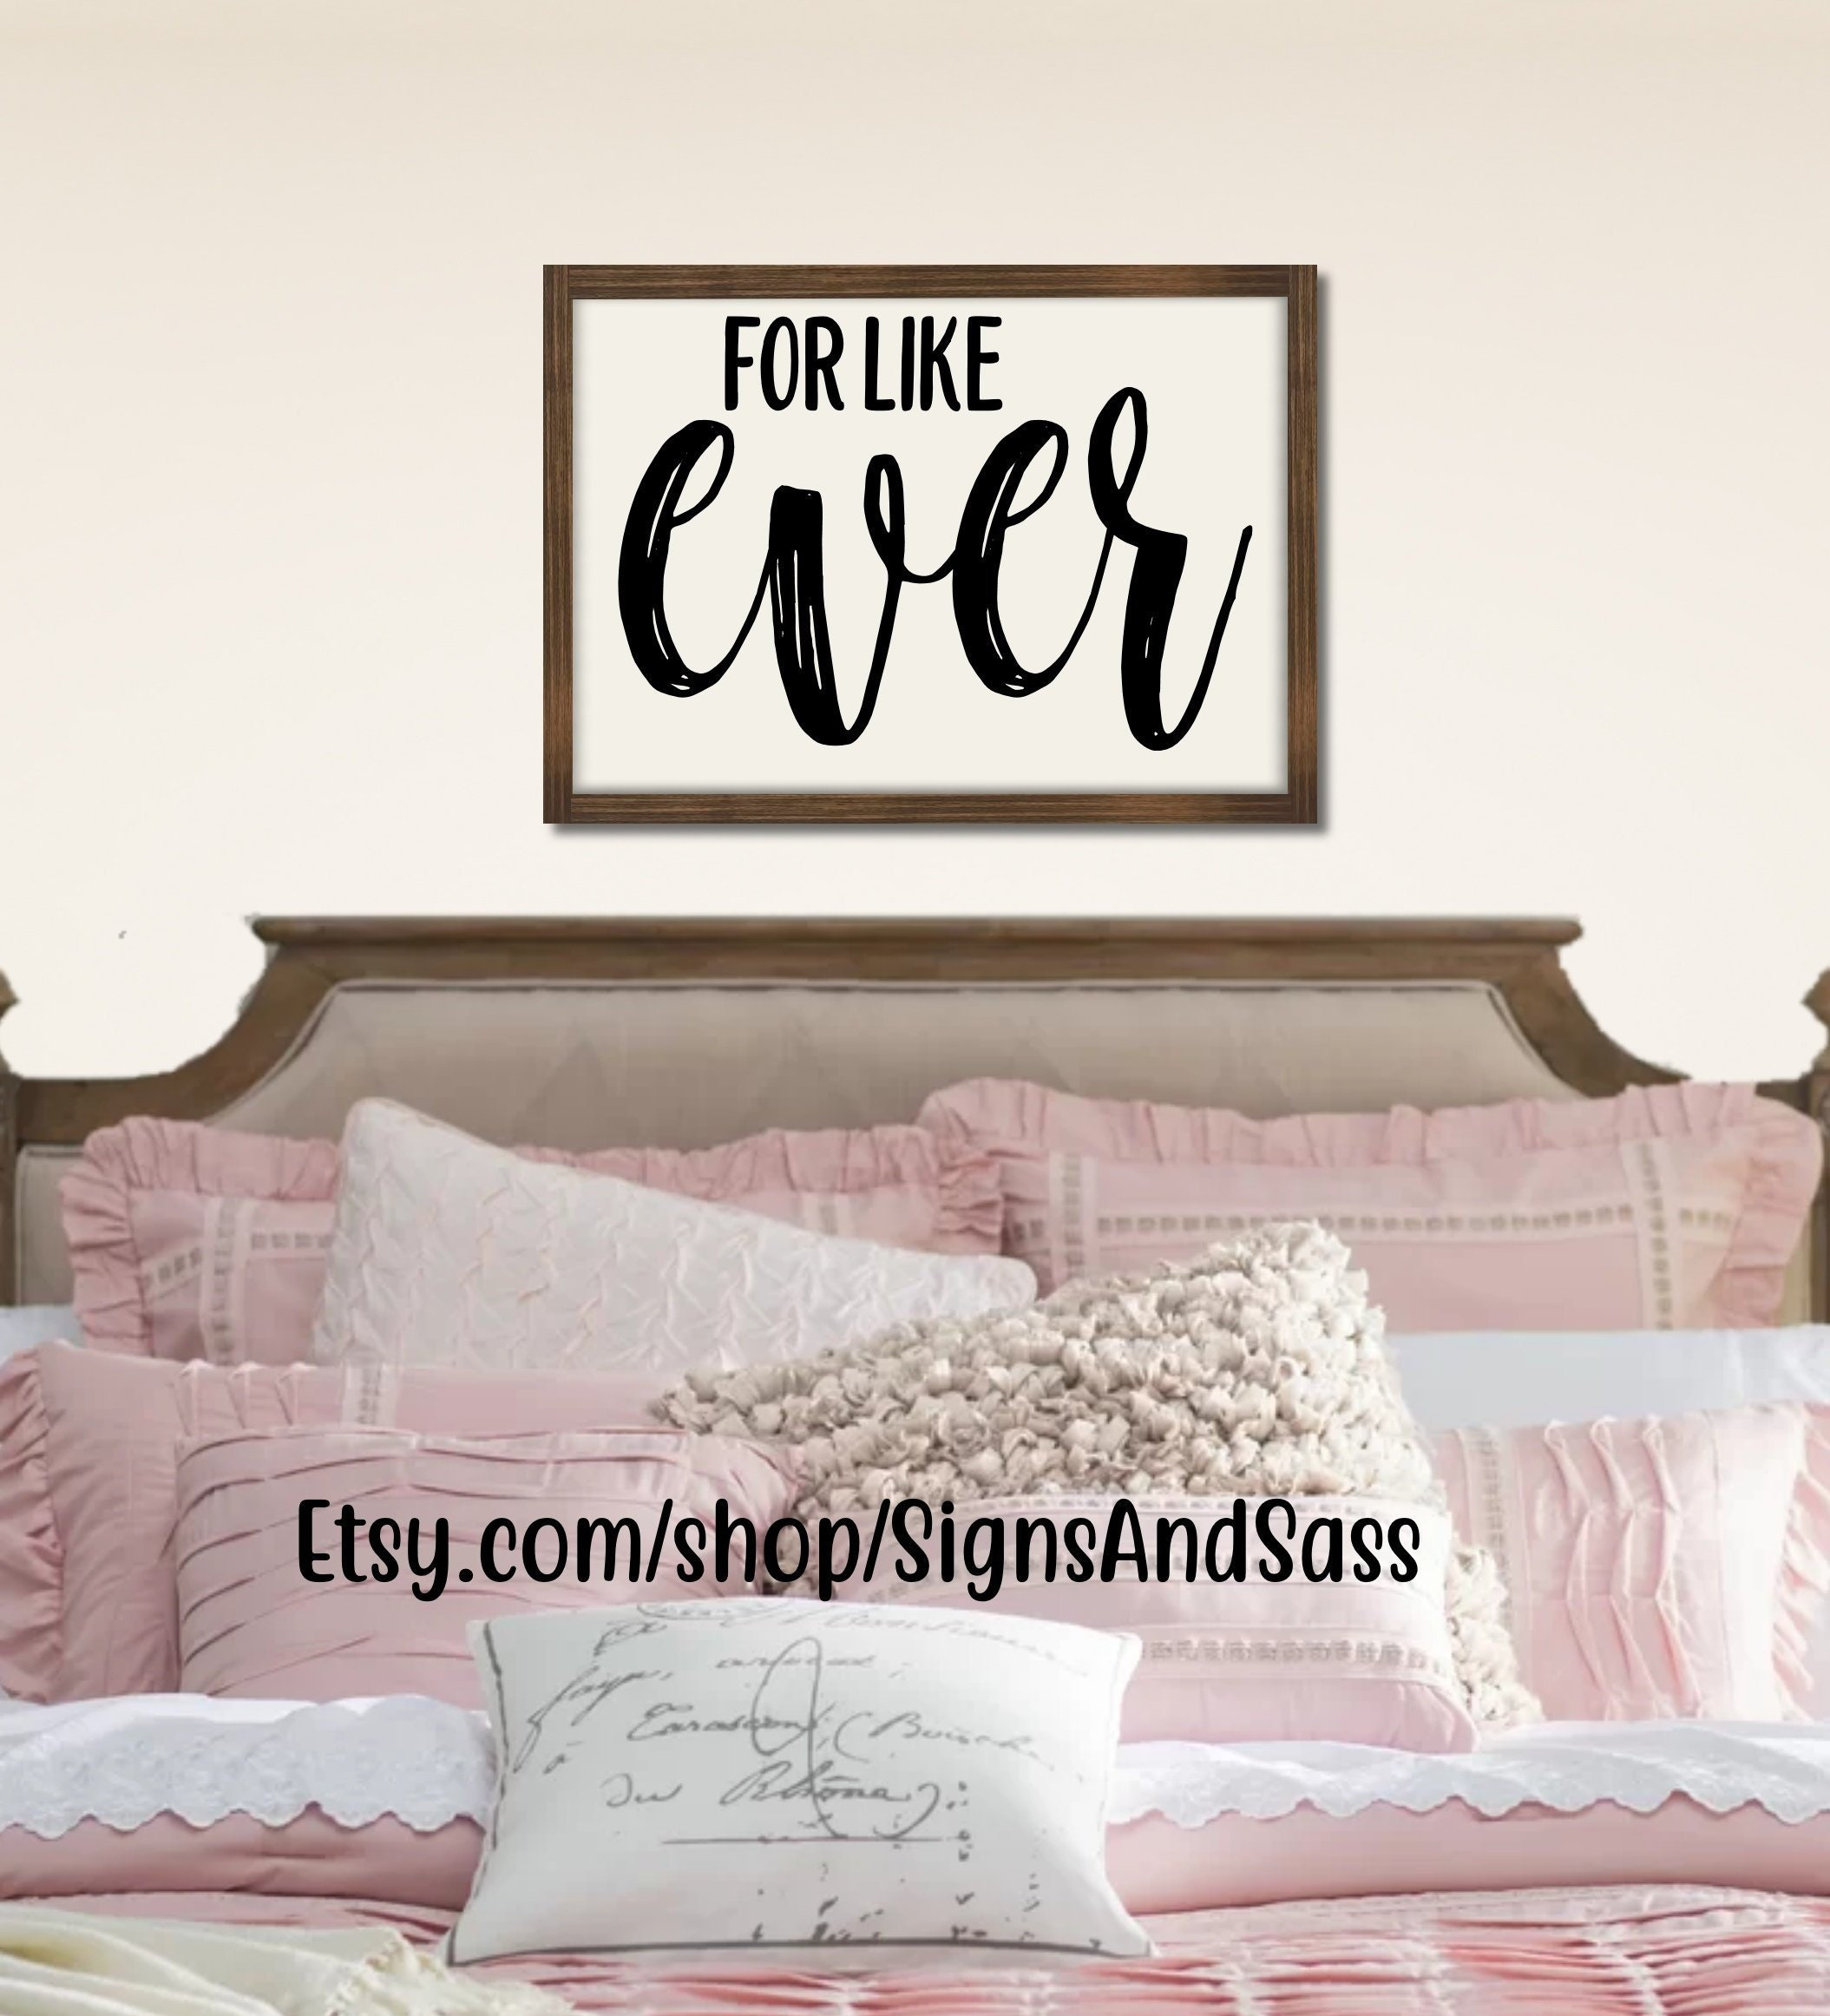 For Like Ever Farmhouse Style Wood Framed Sign Rustic Decor Master Bedroom Above Bed Love Anniversary Wedding Sign